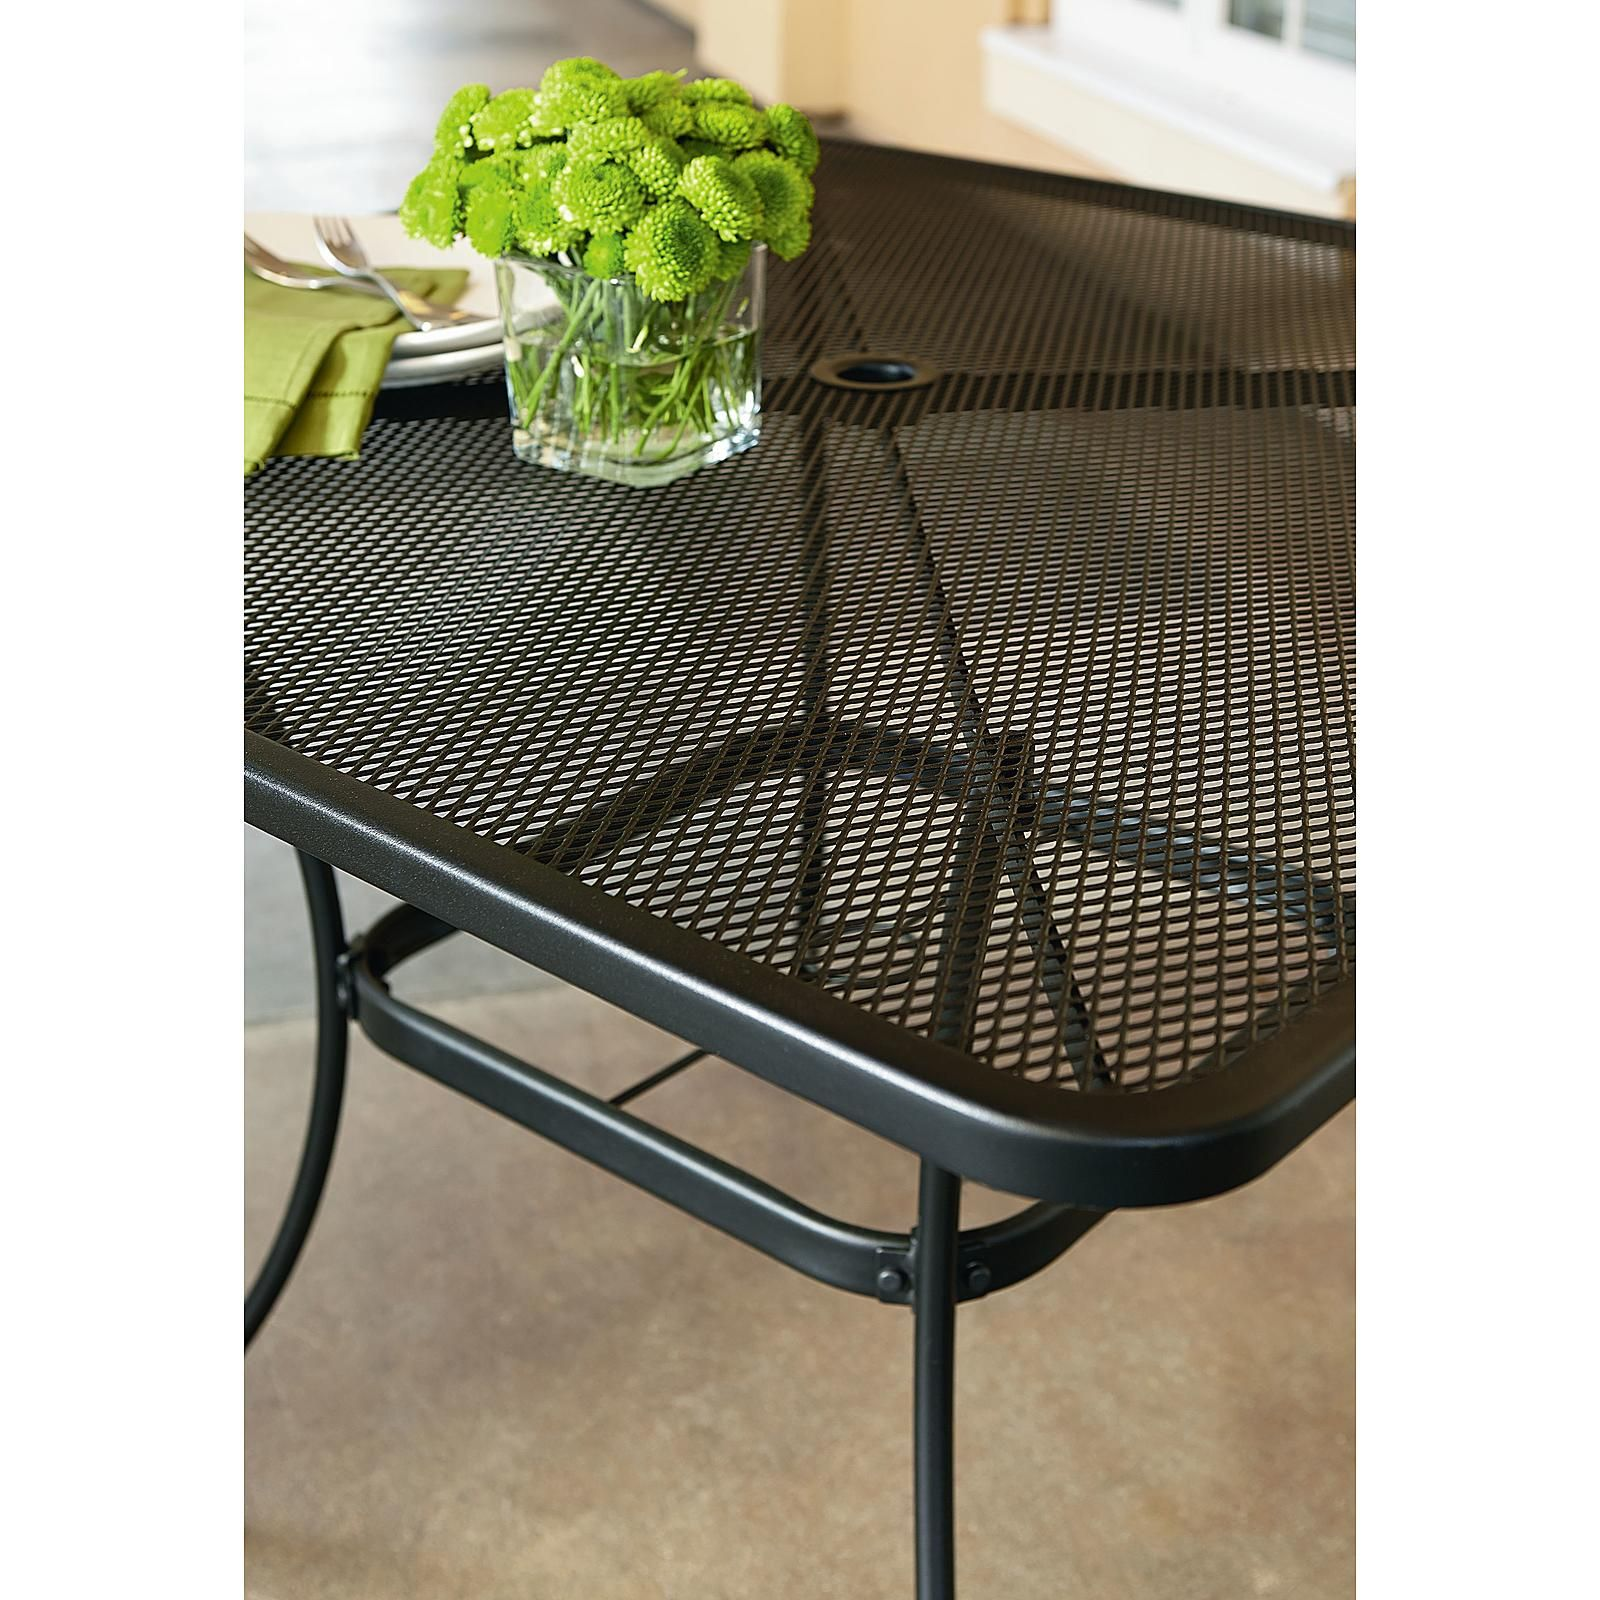 Woodard commercial grade 40 square patio dining table limited availability outdoor living